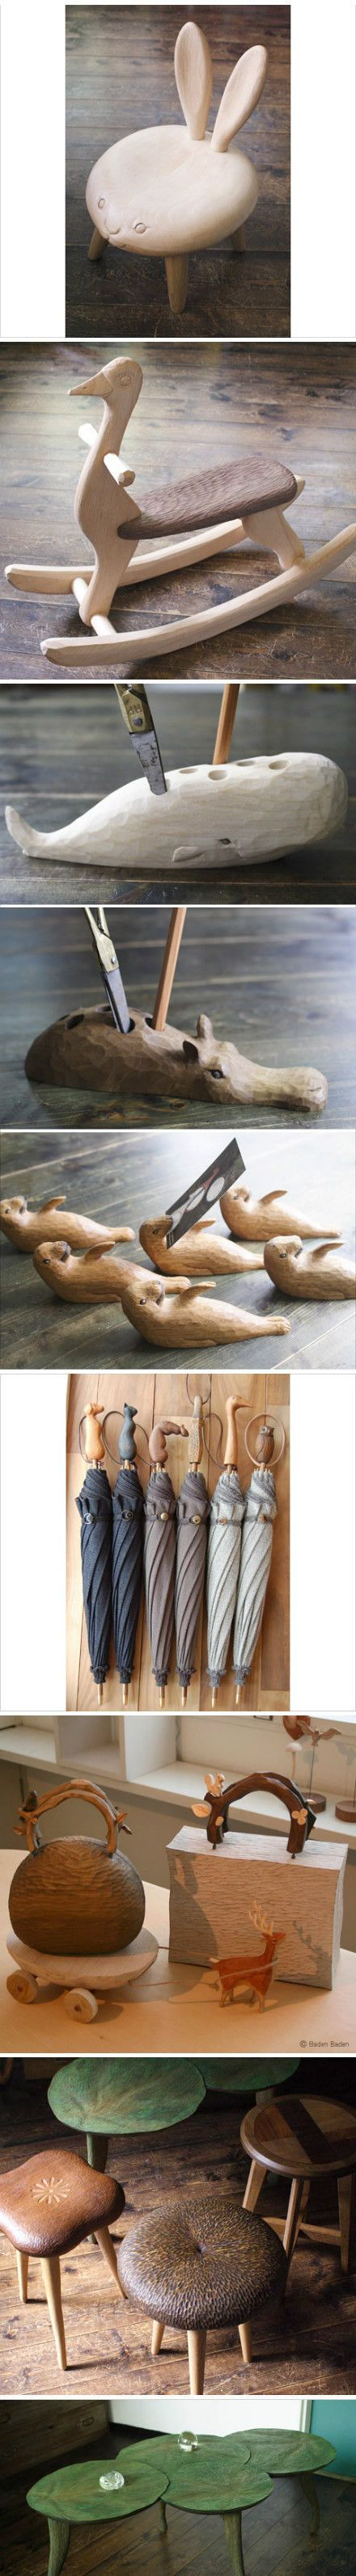 Wood Desk Top Tools, Link won't work but the ideas are great so I'm pinning it anyway!